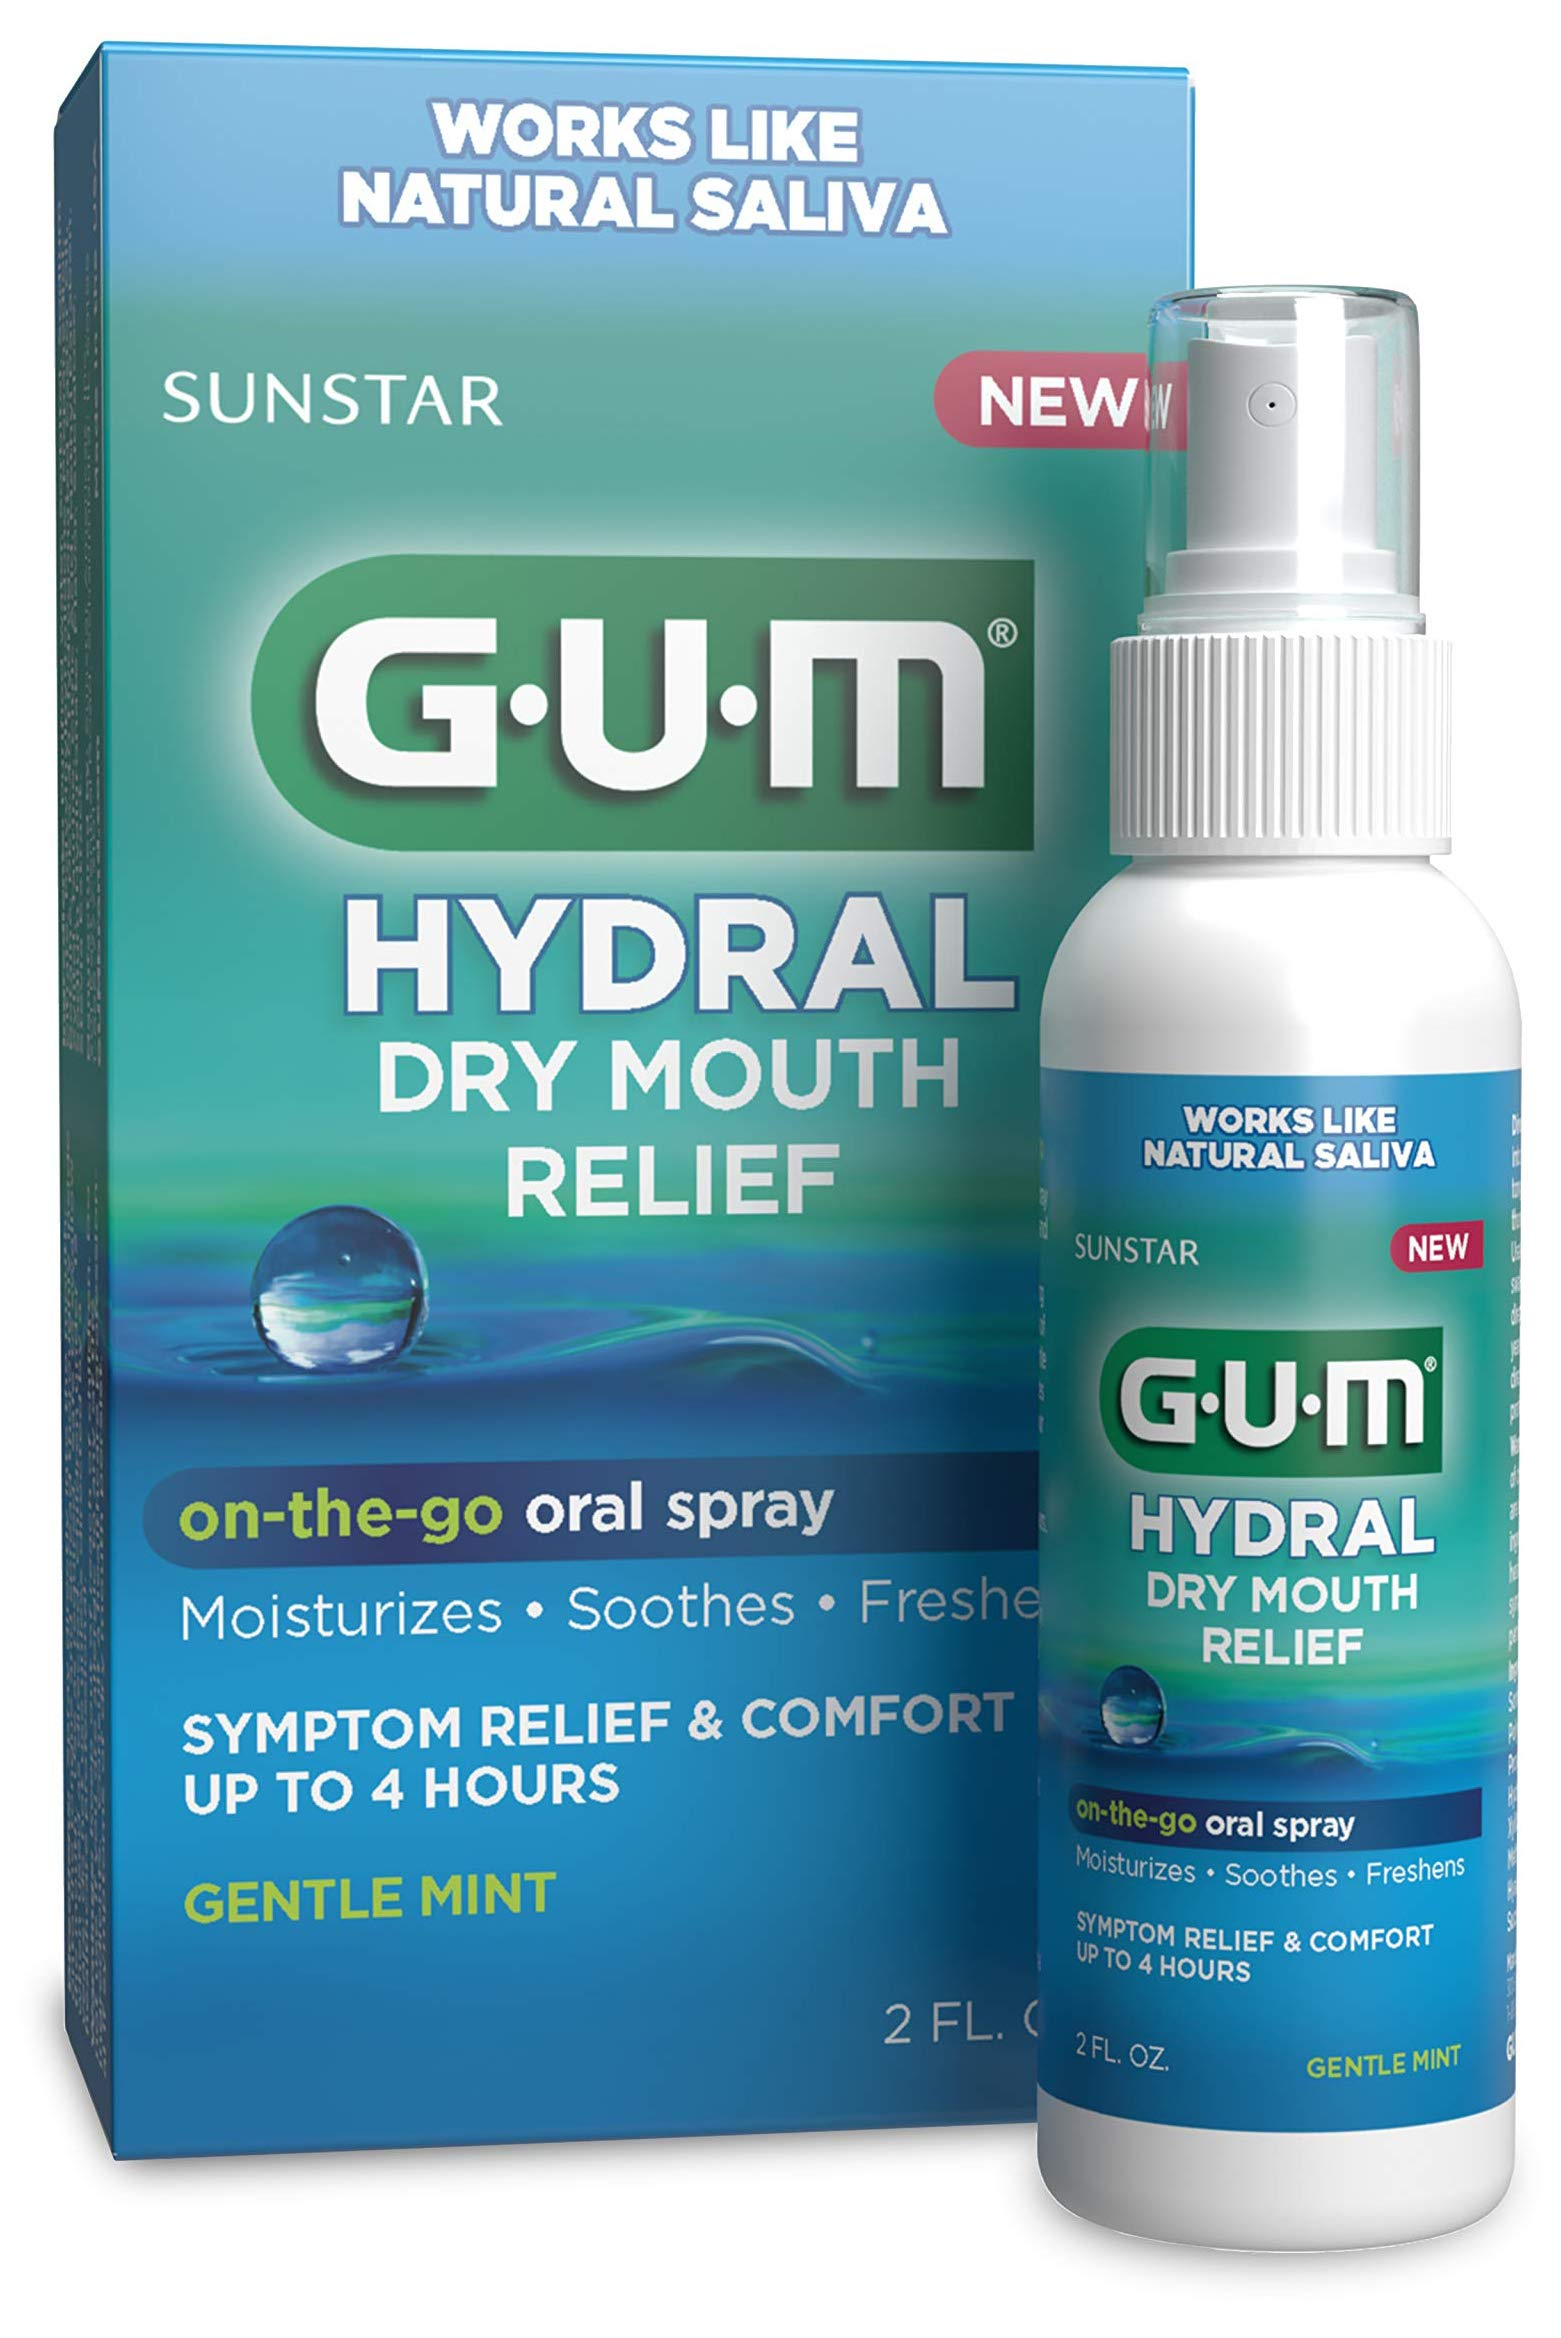 GUM Hydral Oral Spray, Alcohol-Free Gentle Mint Spray for On-The-Go Dry Mouth Relief, 2 oz, (Pack of 3)